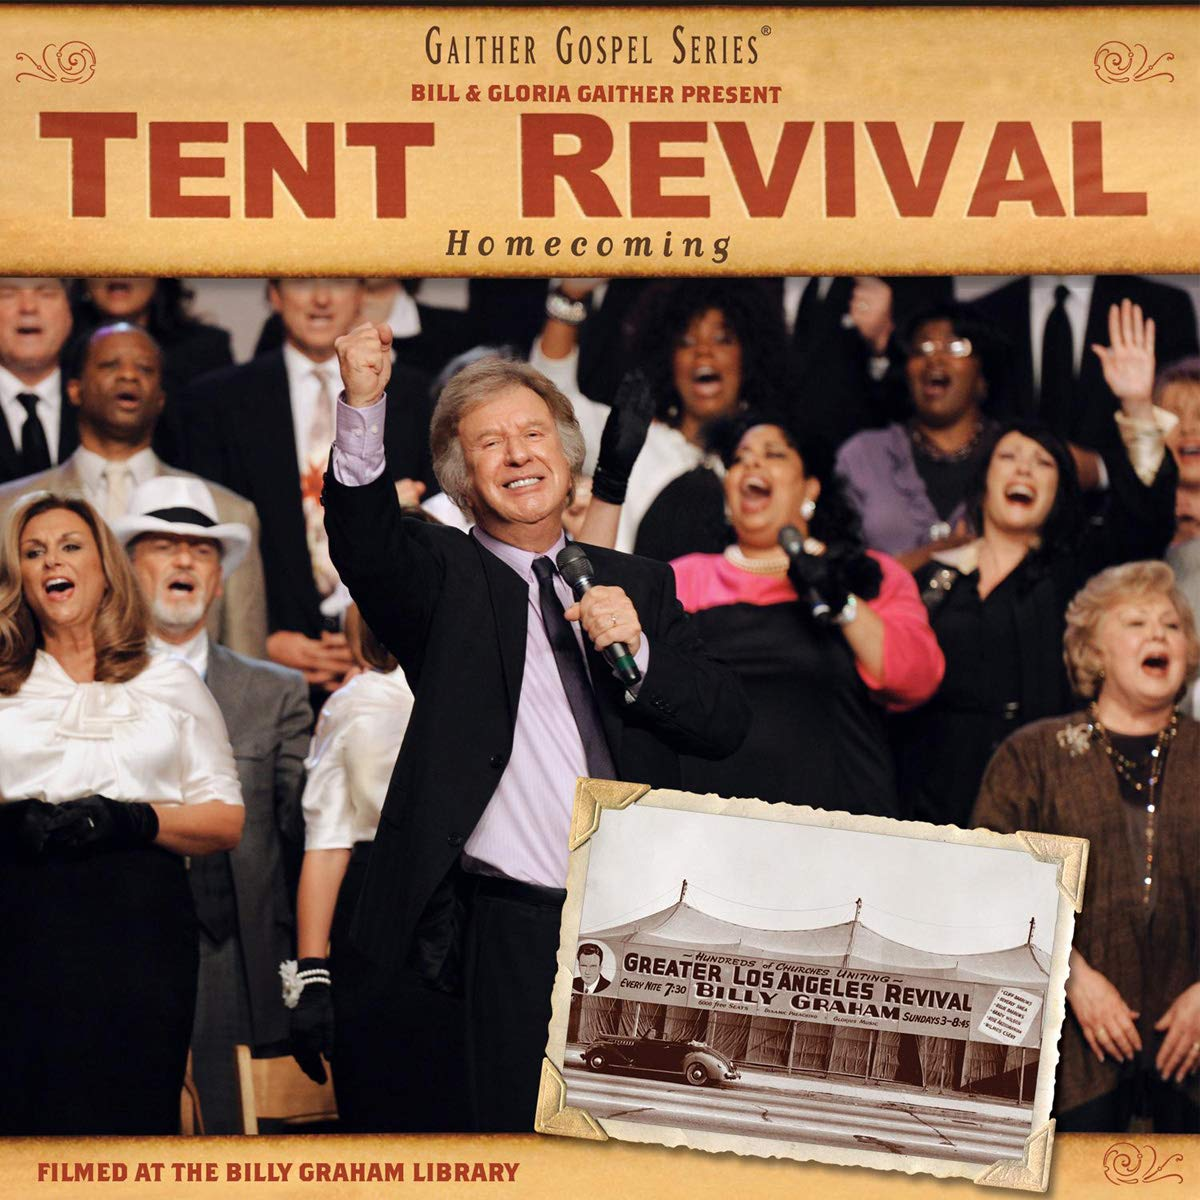 Tent 2021 Revival Homecoming Time sale